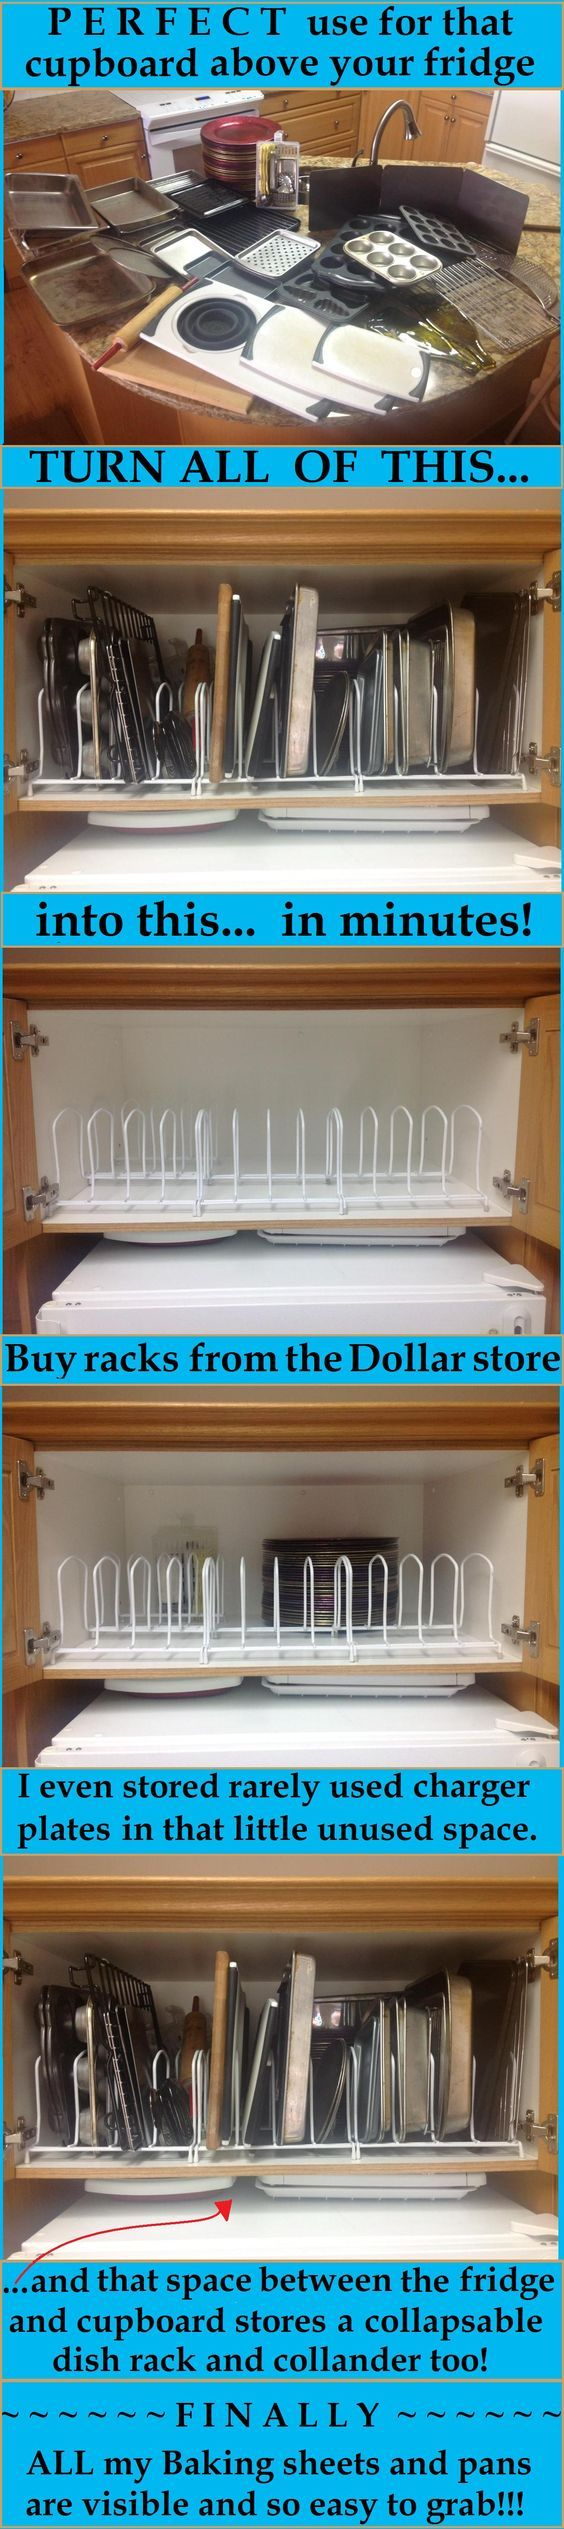 Dollar store dish racks to separate the pans and lids in a cabinet above the fridge: